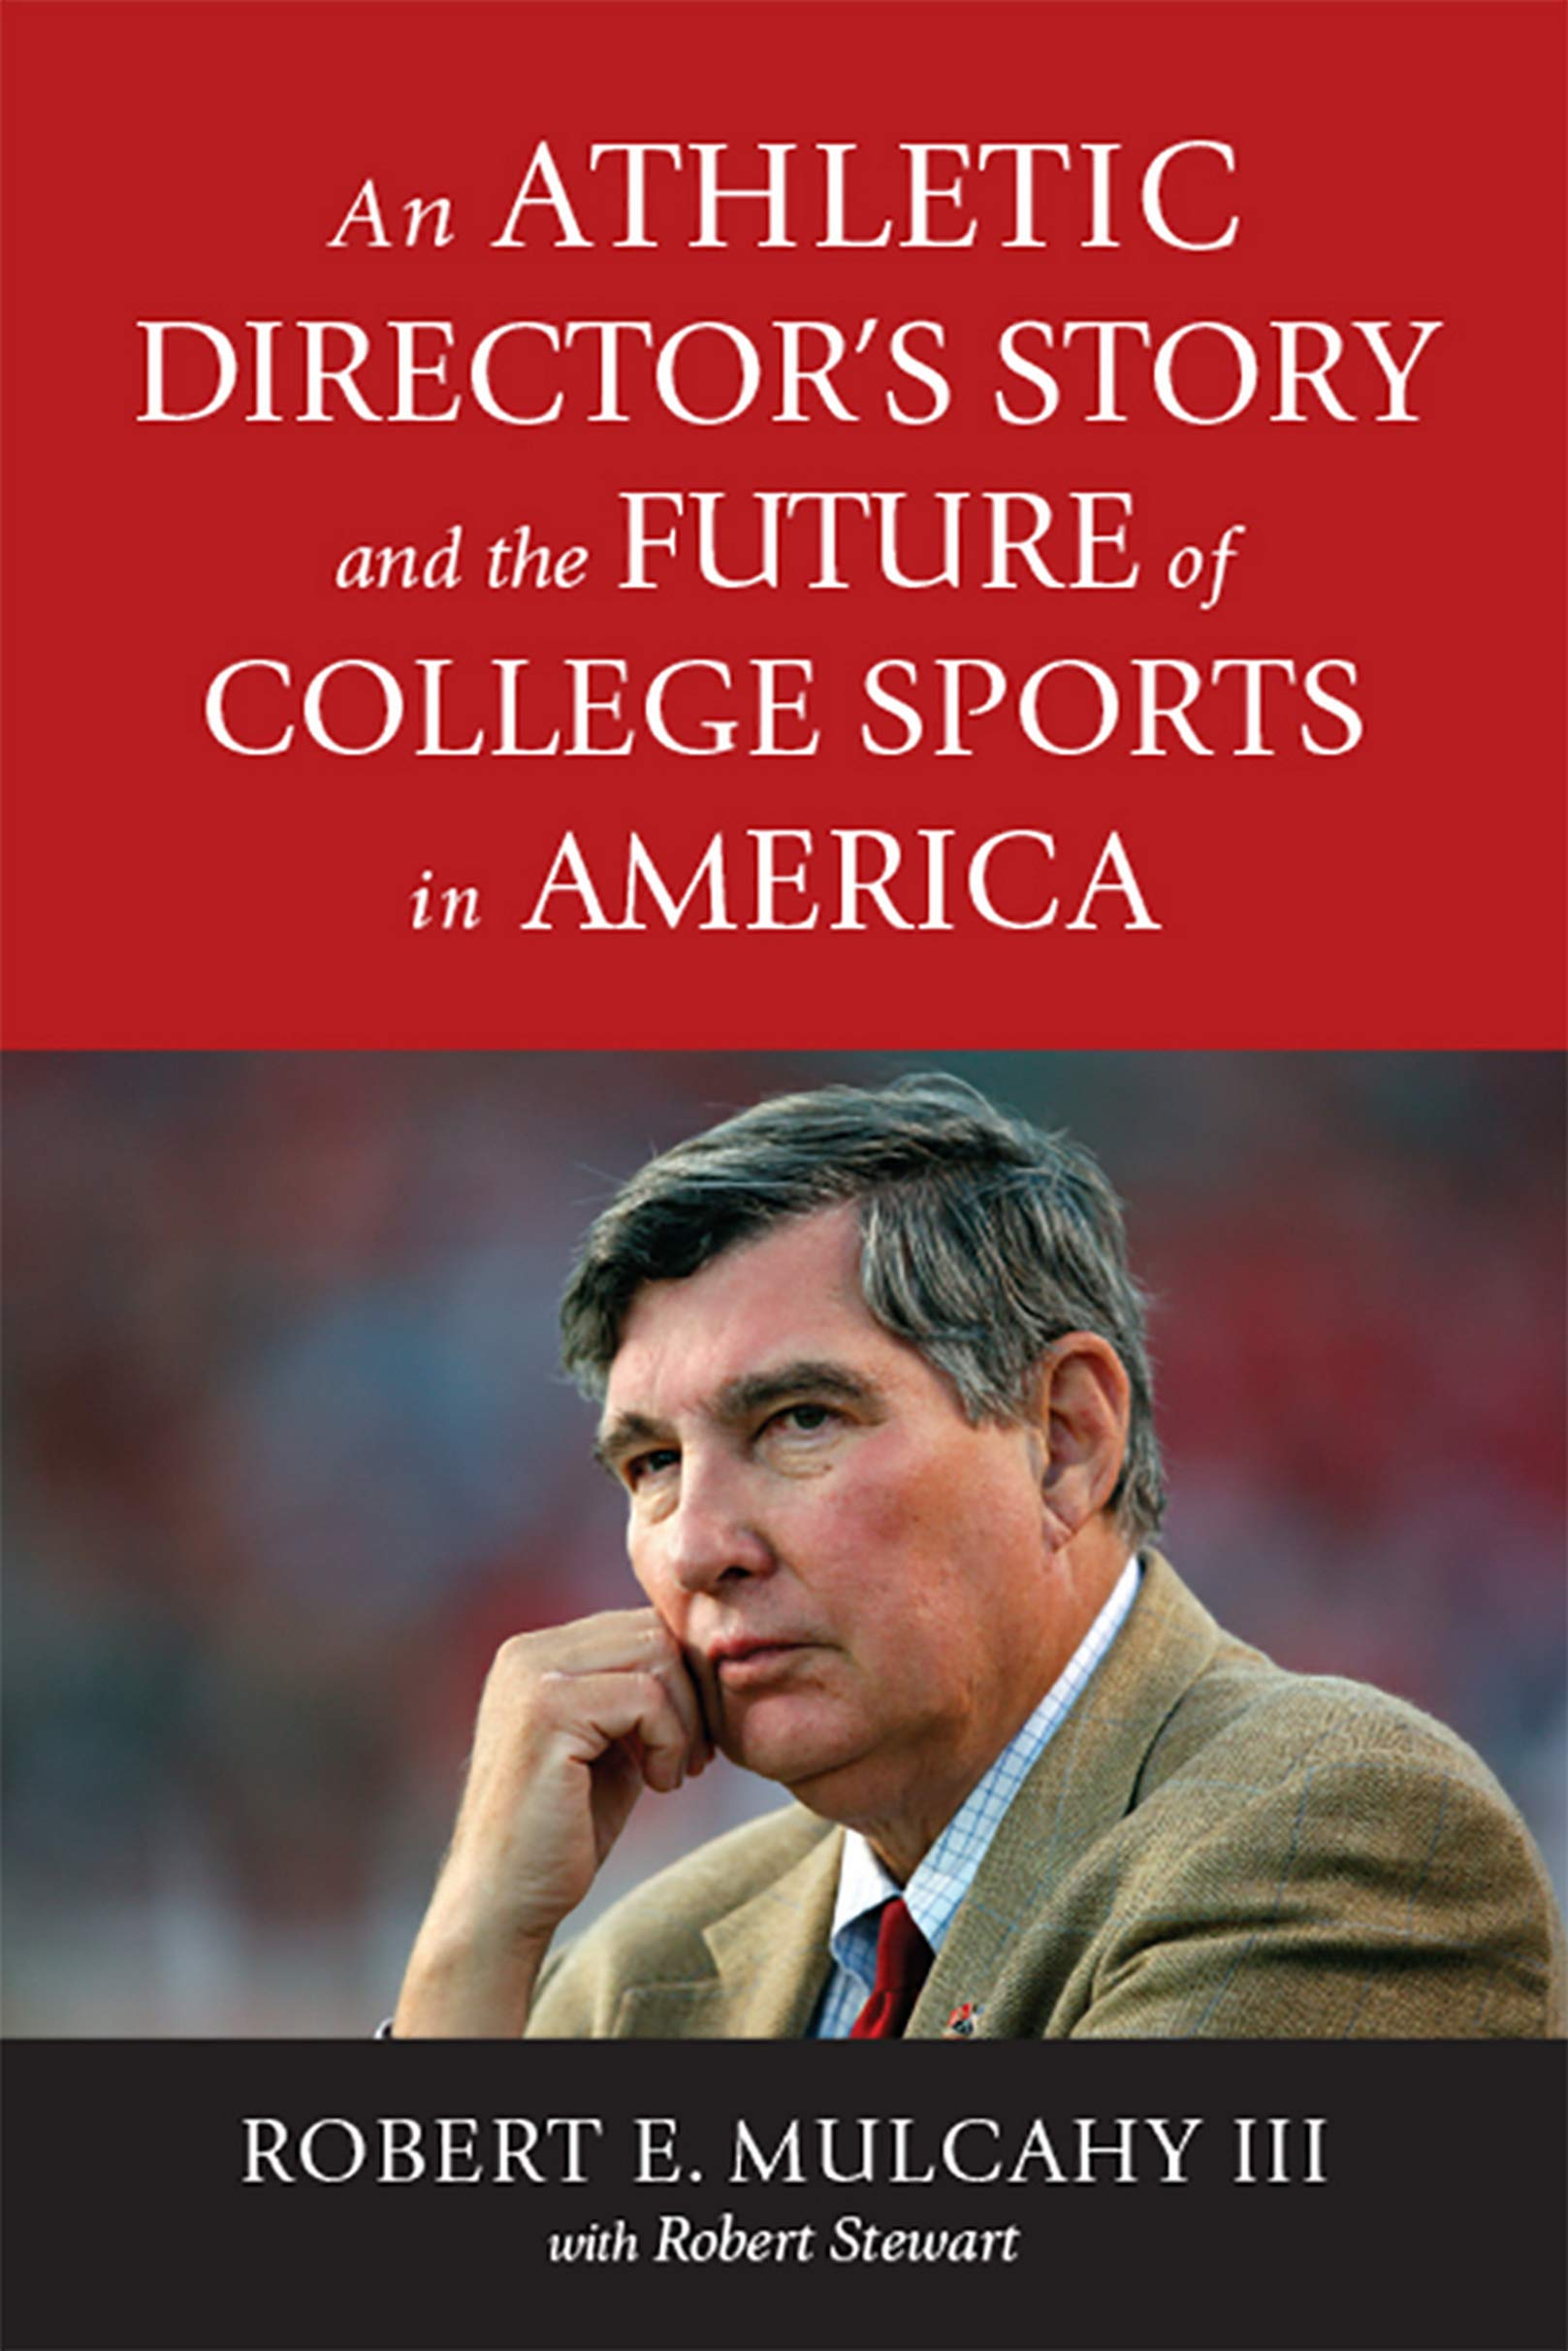 Image OfAn Athletic Director's Story And The Future Of College Sports In America (English Edition)